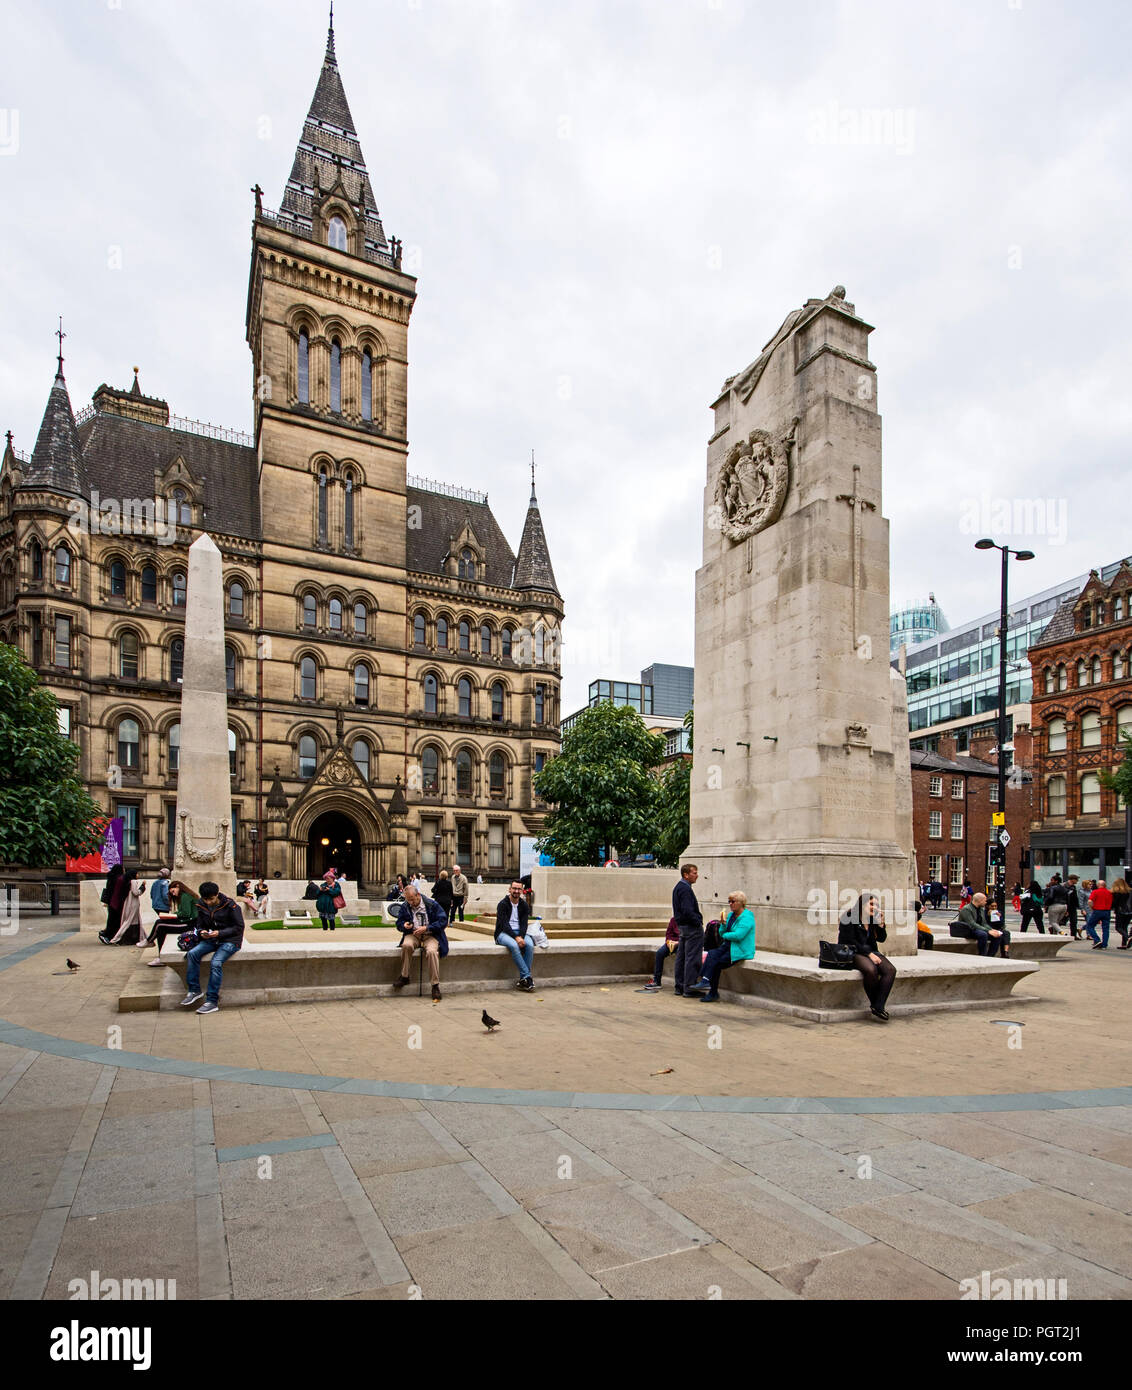 Manchester war memorial cenotaph in St Peters Square Manchester England designed by Sir Edward Luytens erected 1924 moved to present site in 2014. Stock Photo